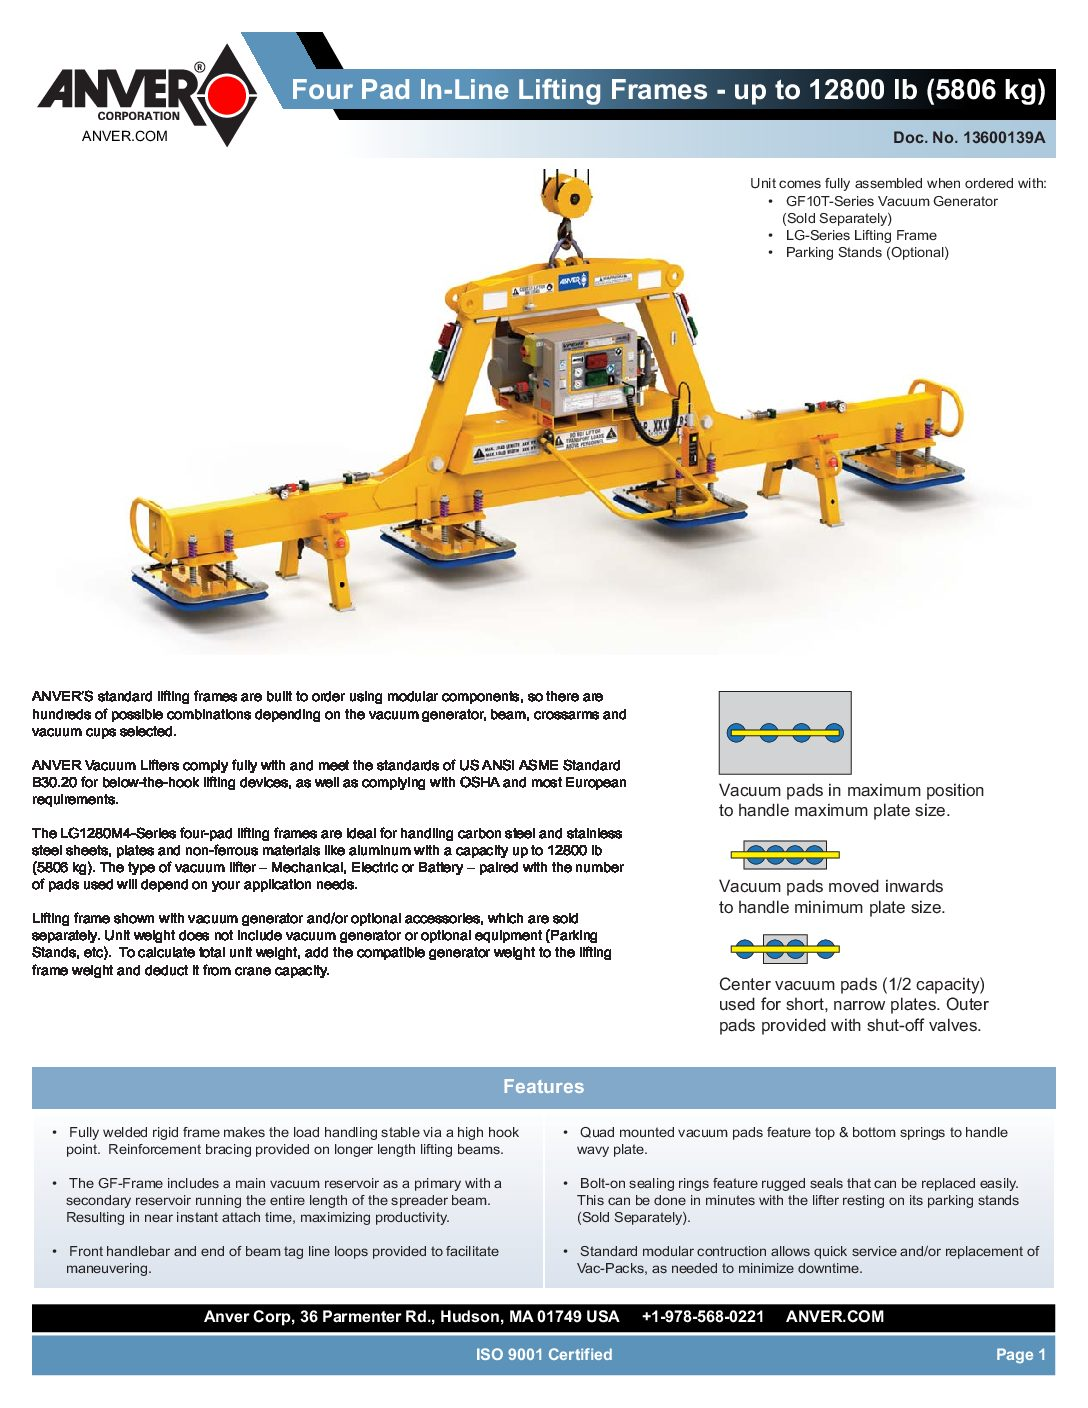 Anver Vacuum Pad Lifting Frames 4 pad inline Spread Sheet pdf